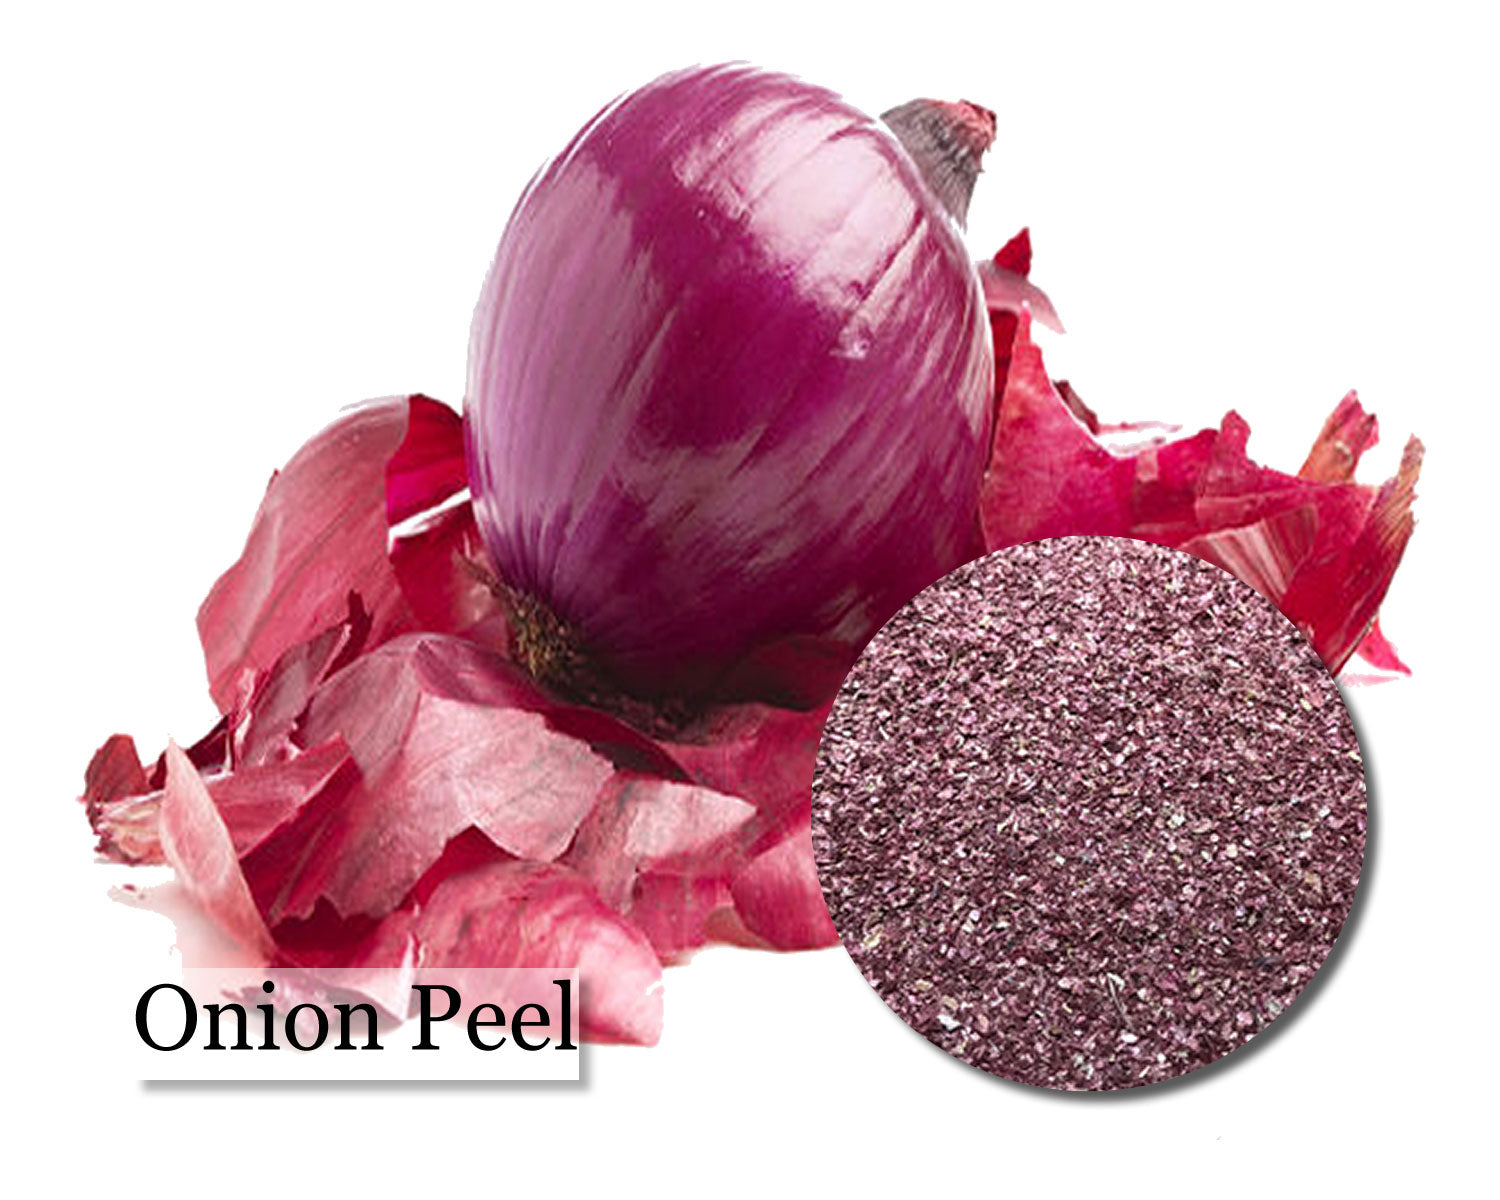 Onion Peel 2oz